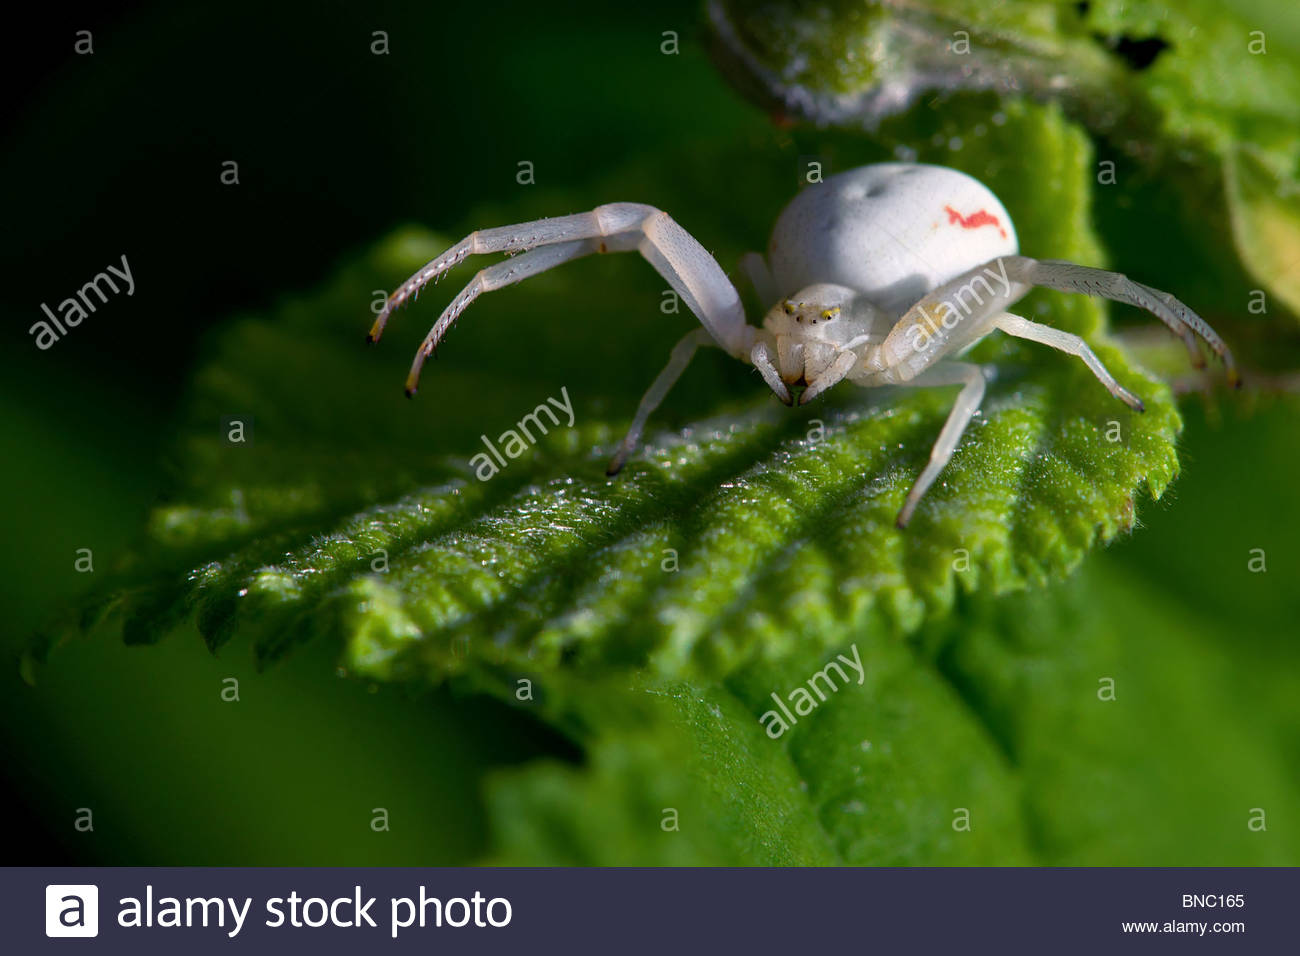 goldenrod-crab-spider-white-female-misum